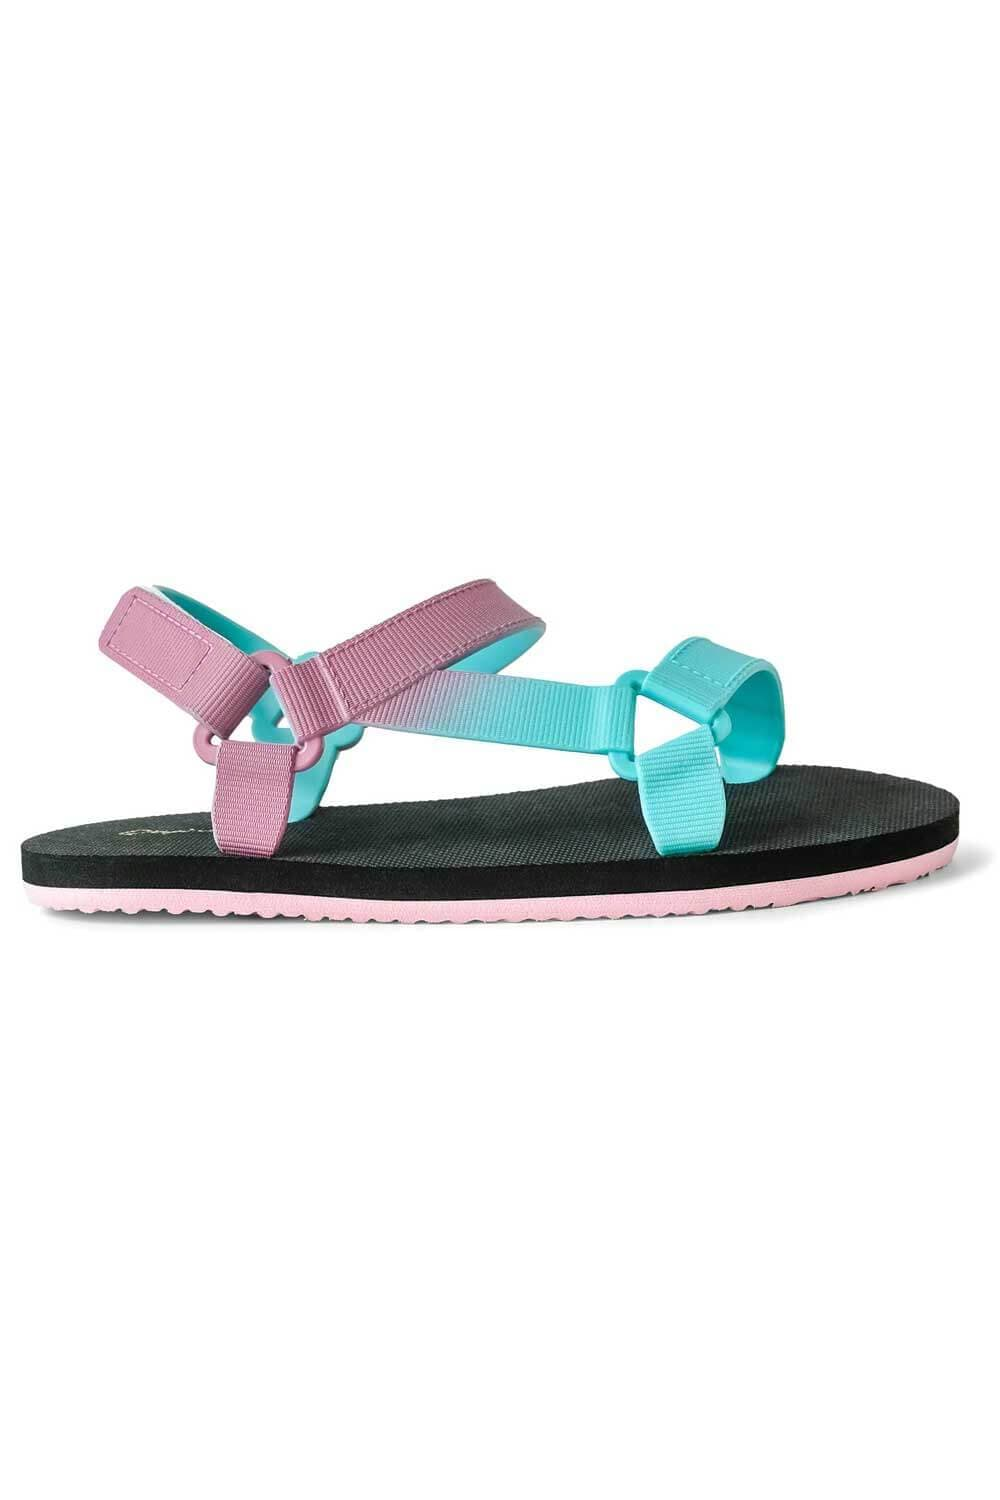 Icela Sandals Purple Teal side - MILK MONEY